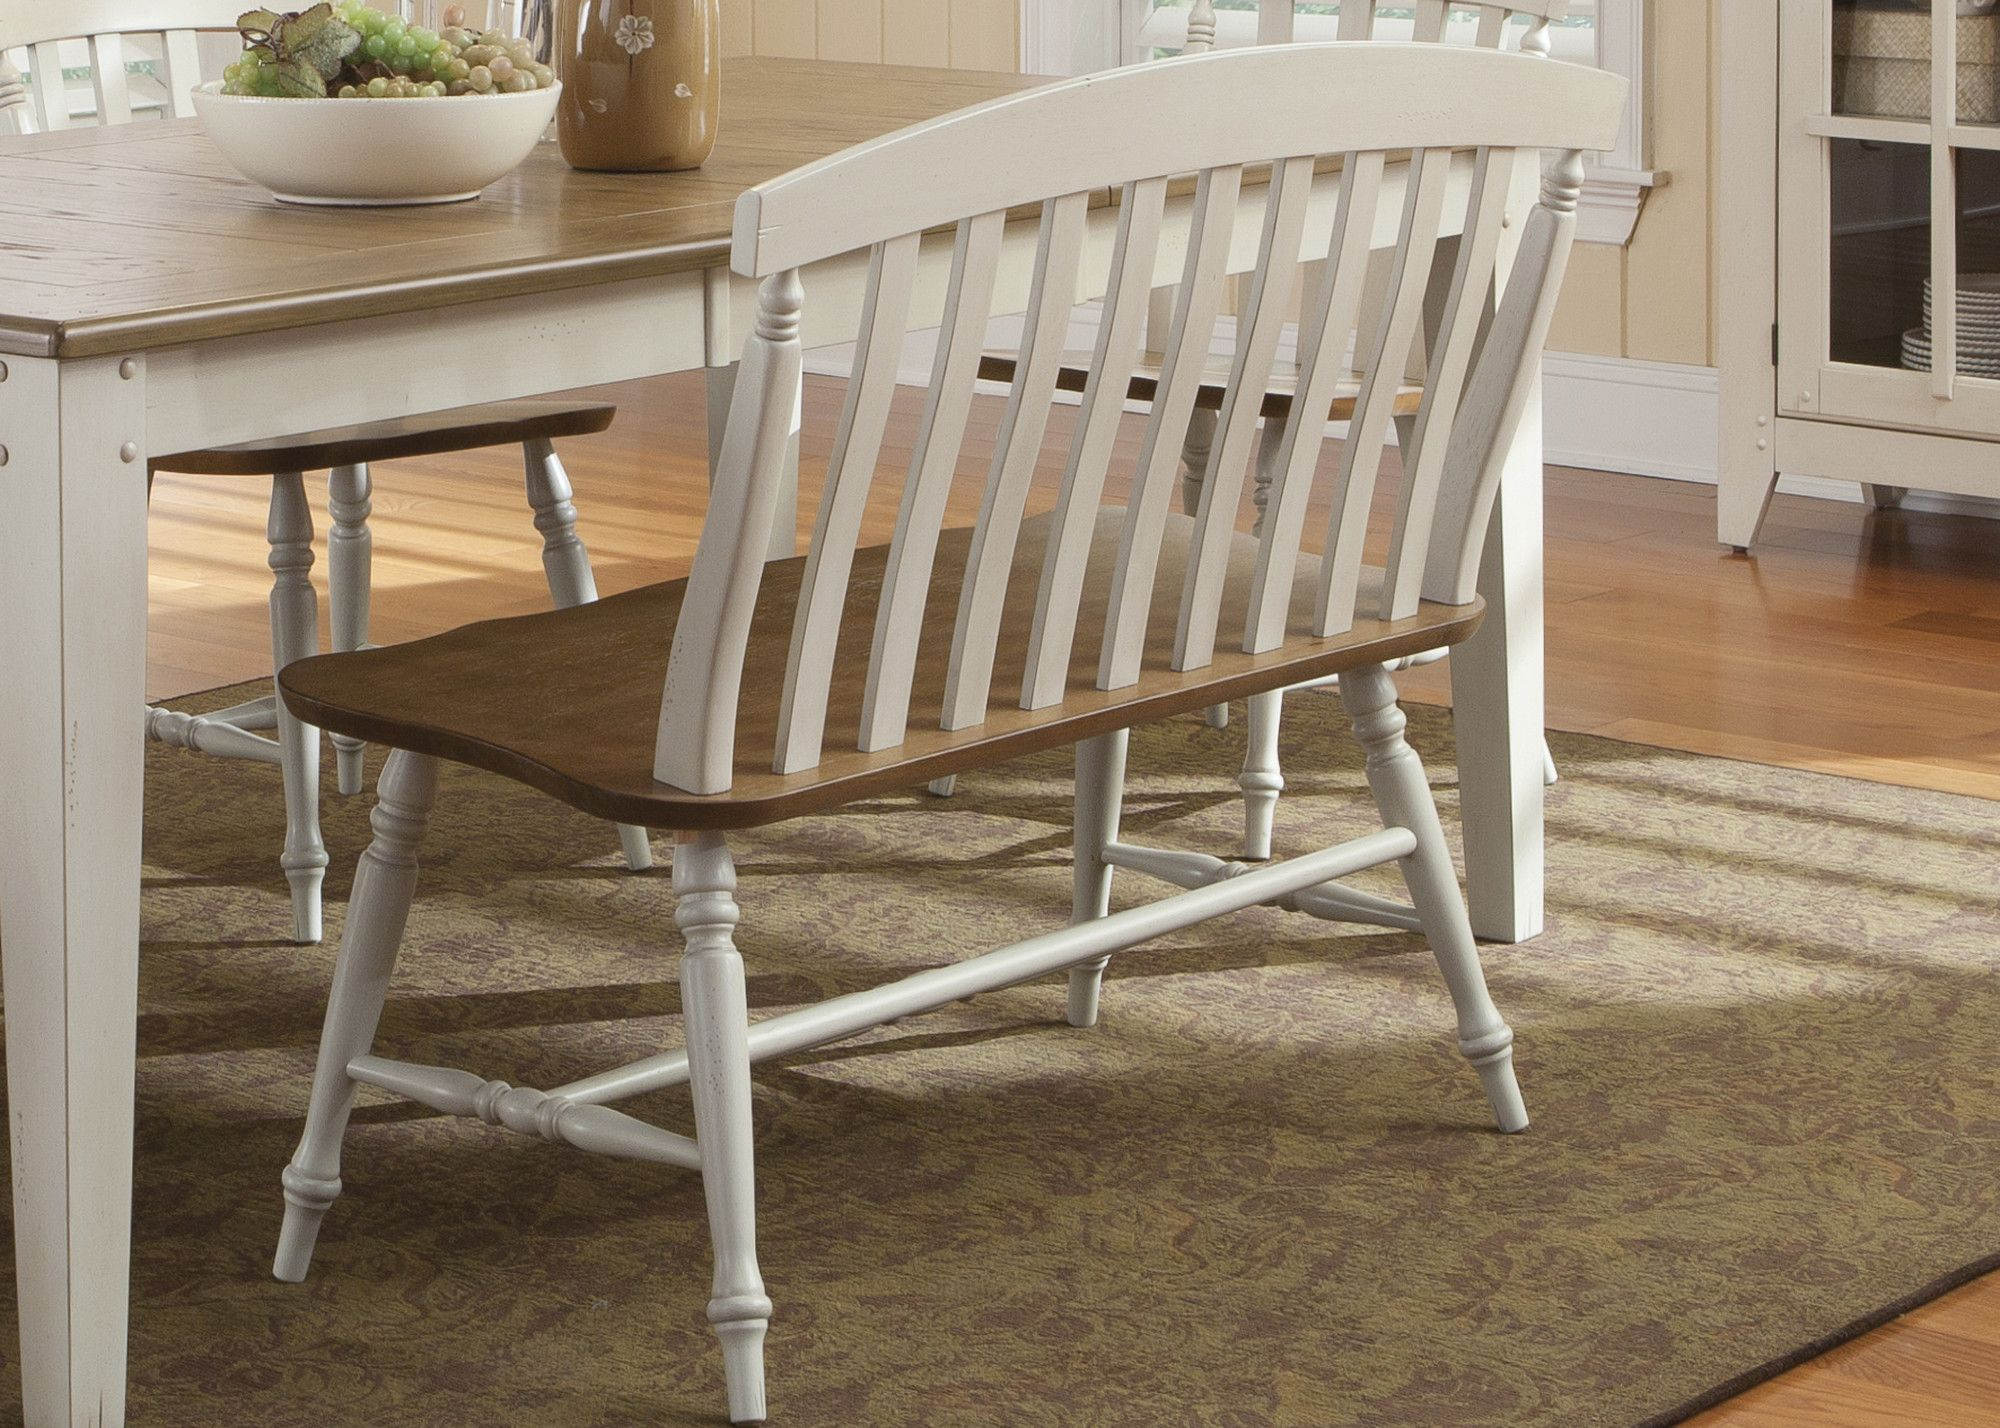 Surprising Liberty Furniture Al Fresco Kitchen Bench Reviews Caraccident5 Cool Chair Designs And Ideas Caraccident5Info